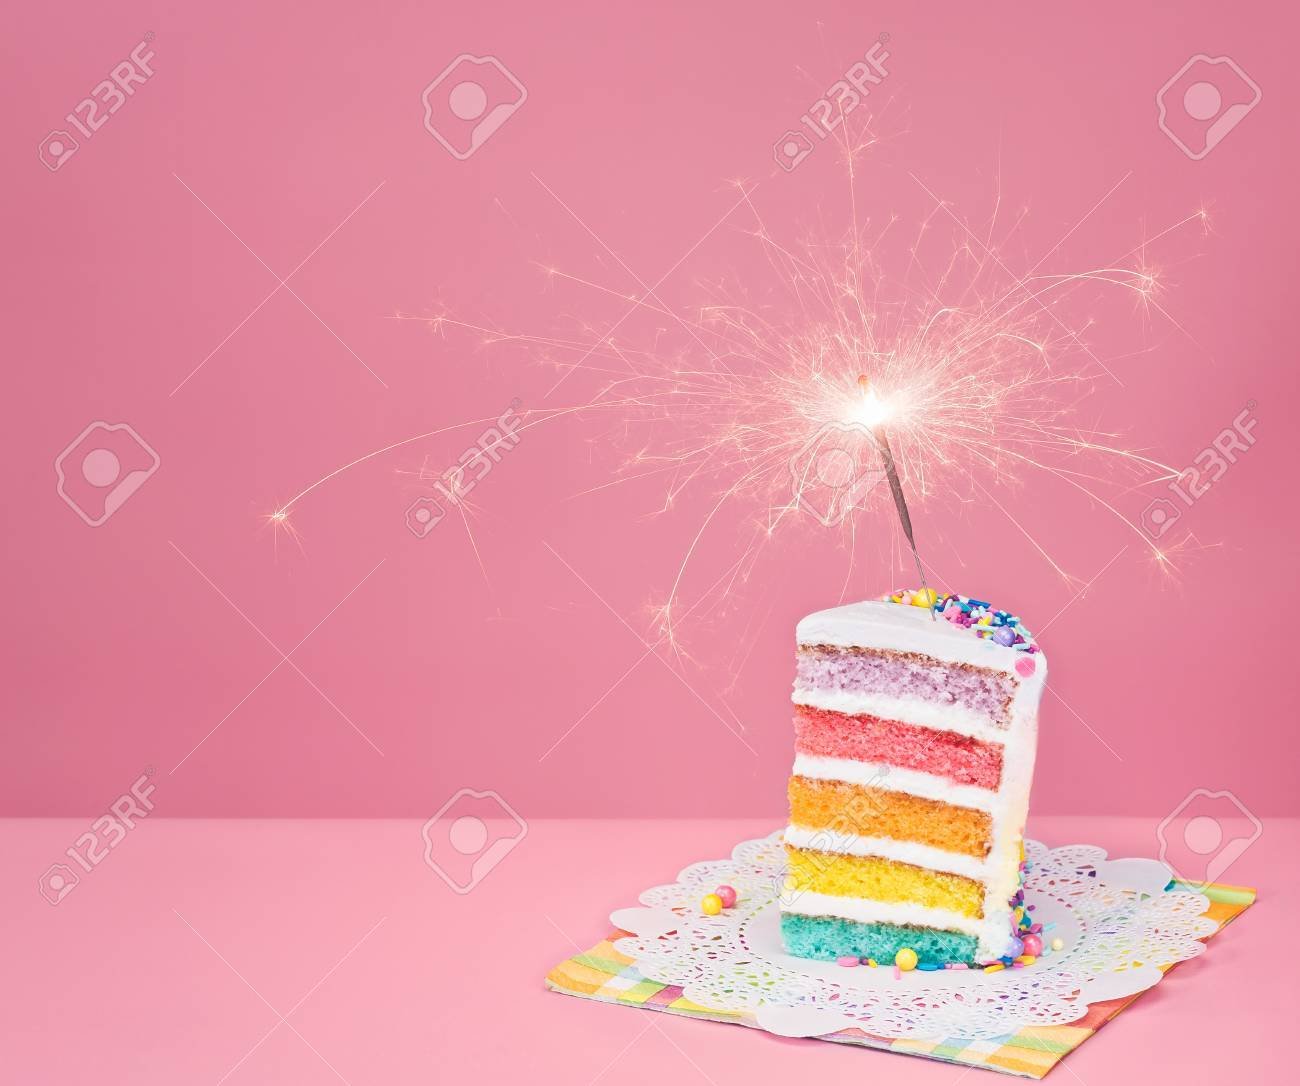 Swell Slice Of Birthday Cake On A Pink Background With Rainbow Layers Personalised Birthday Cards Paralily Jamesorg